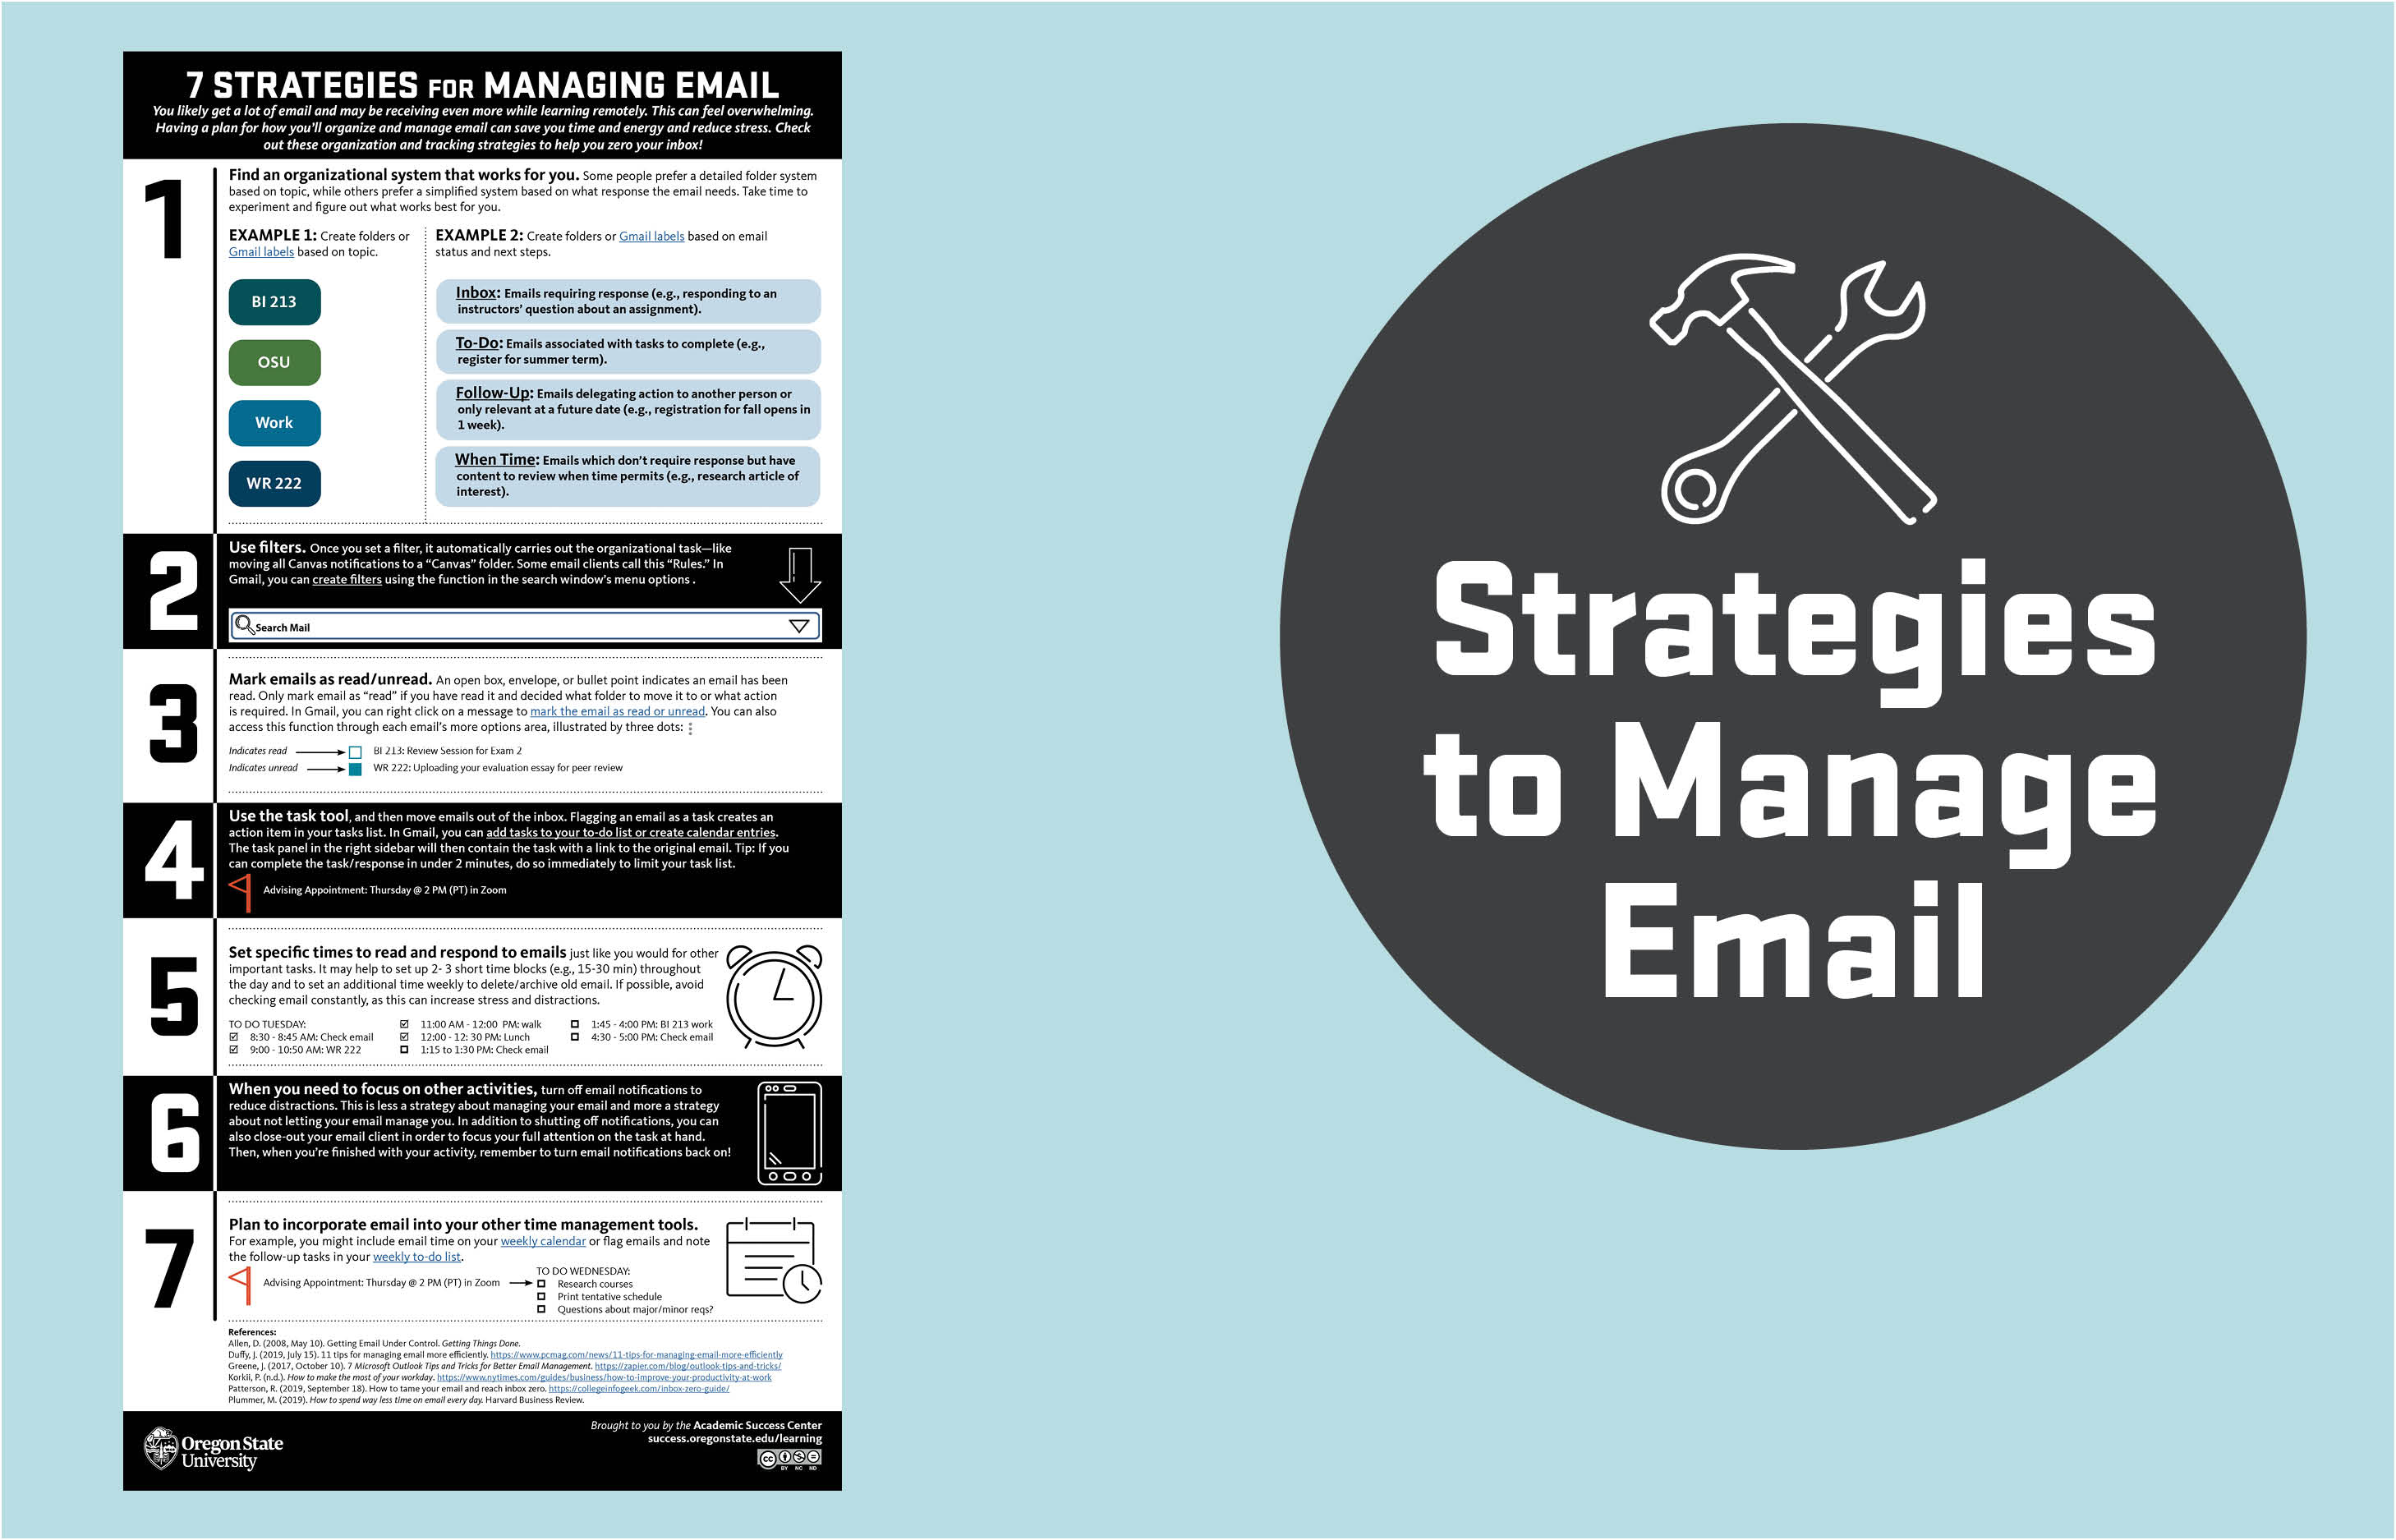 Strategies to Manage Email